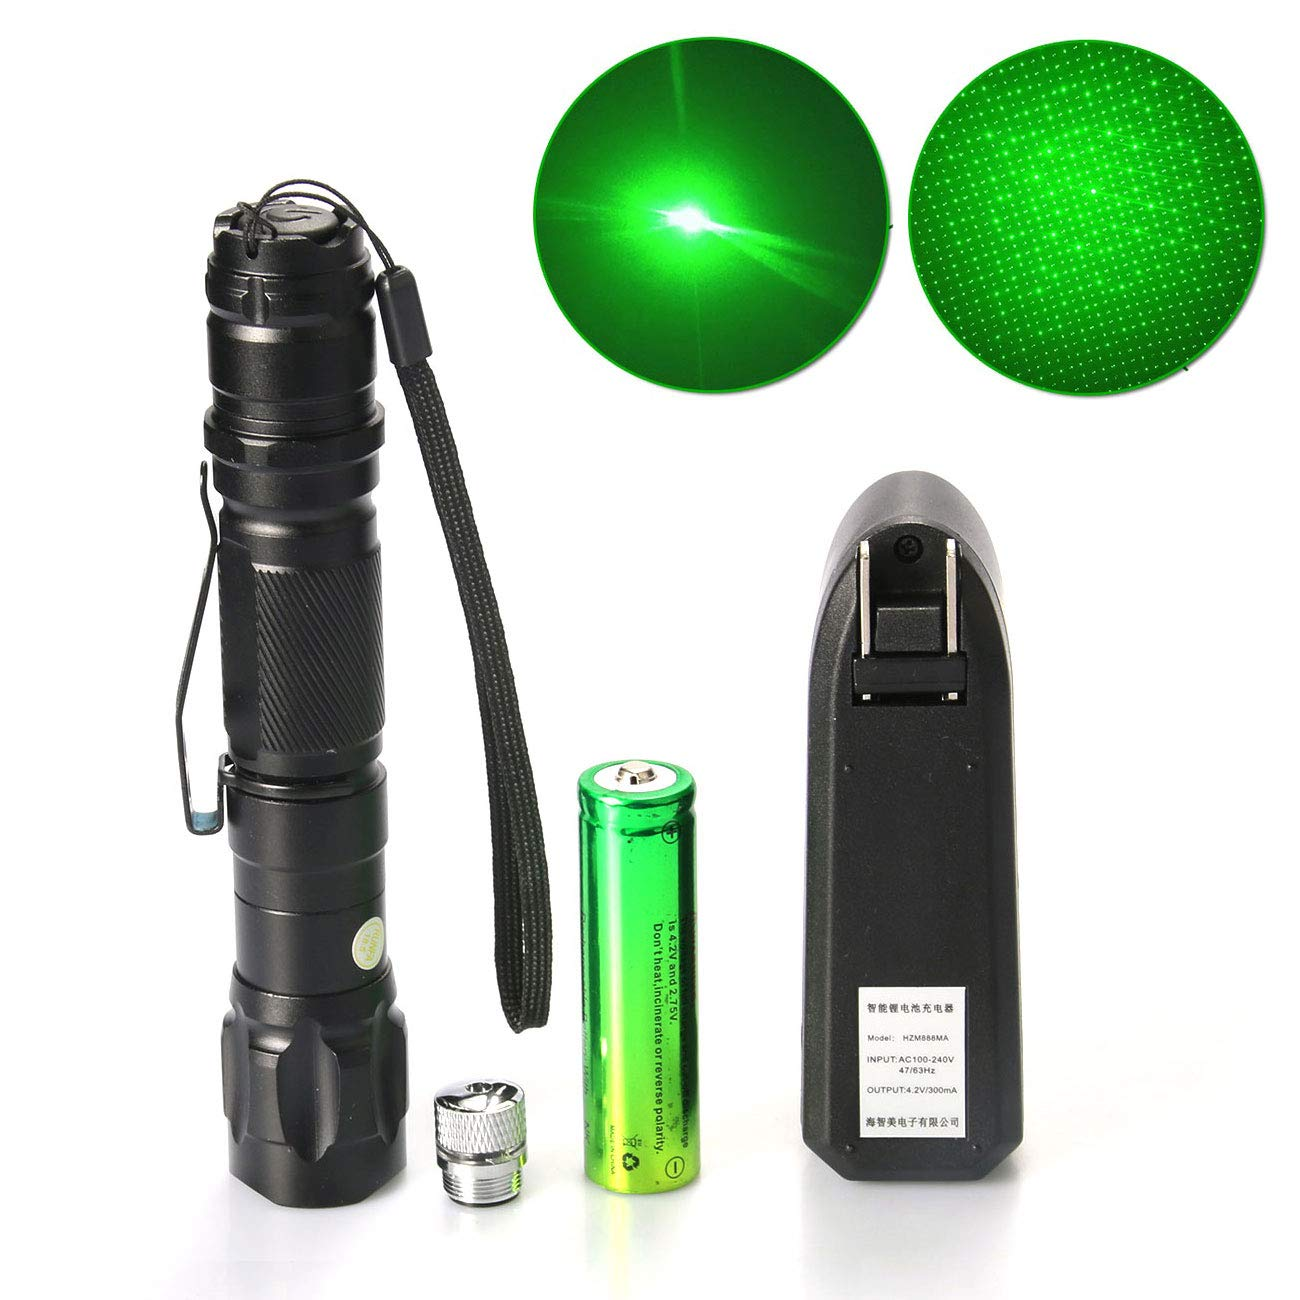 Green Laser Pointer Pen Visible Beam Light 532nm Military Flashlight Pointer Pen Green Laser Pointer With Star Cap Home